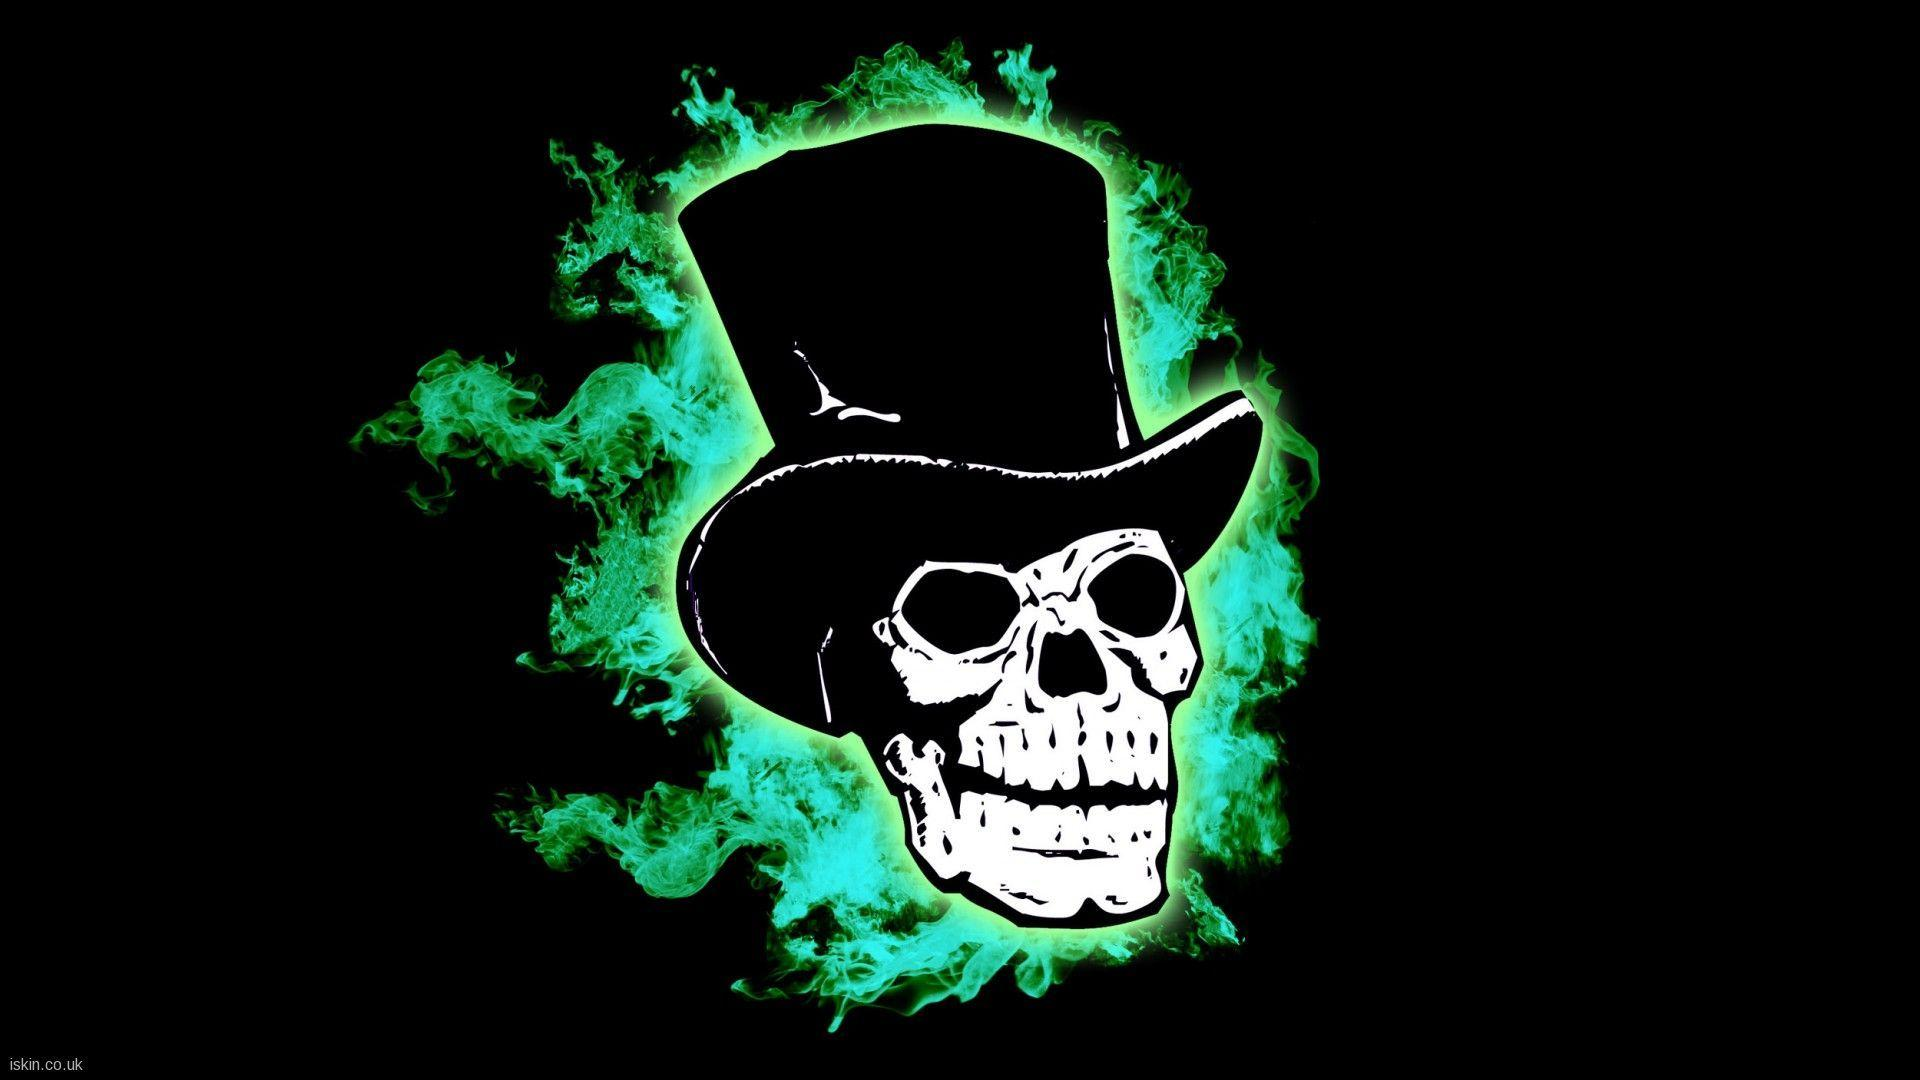 Blue Fire Skull Wallpaper HD